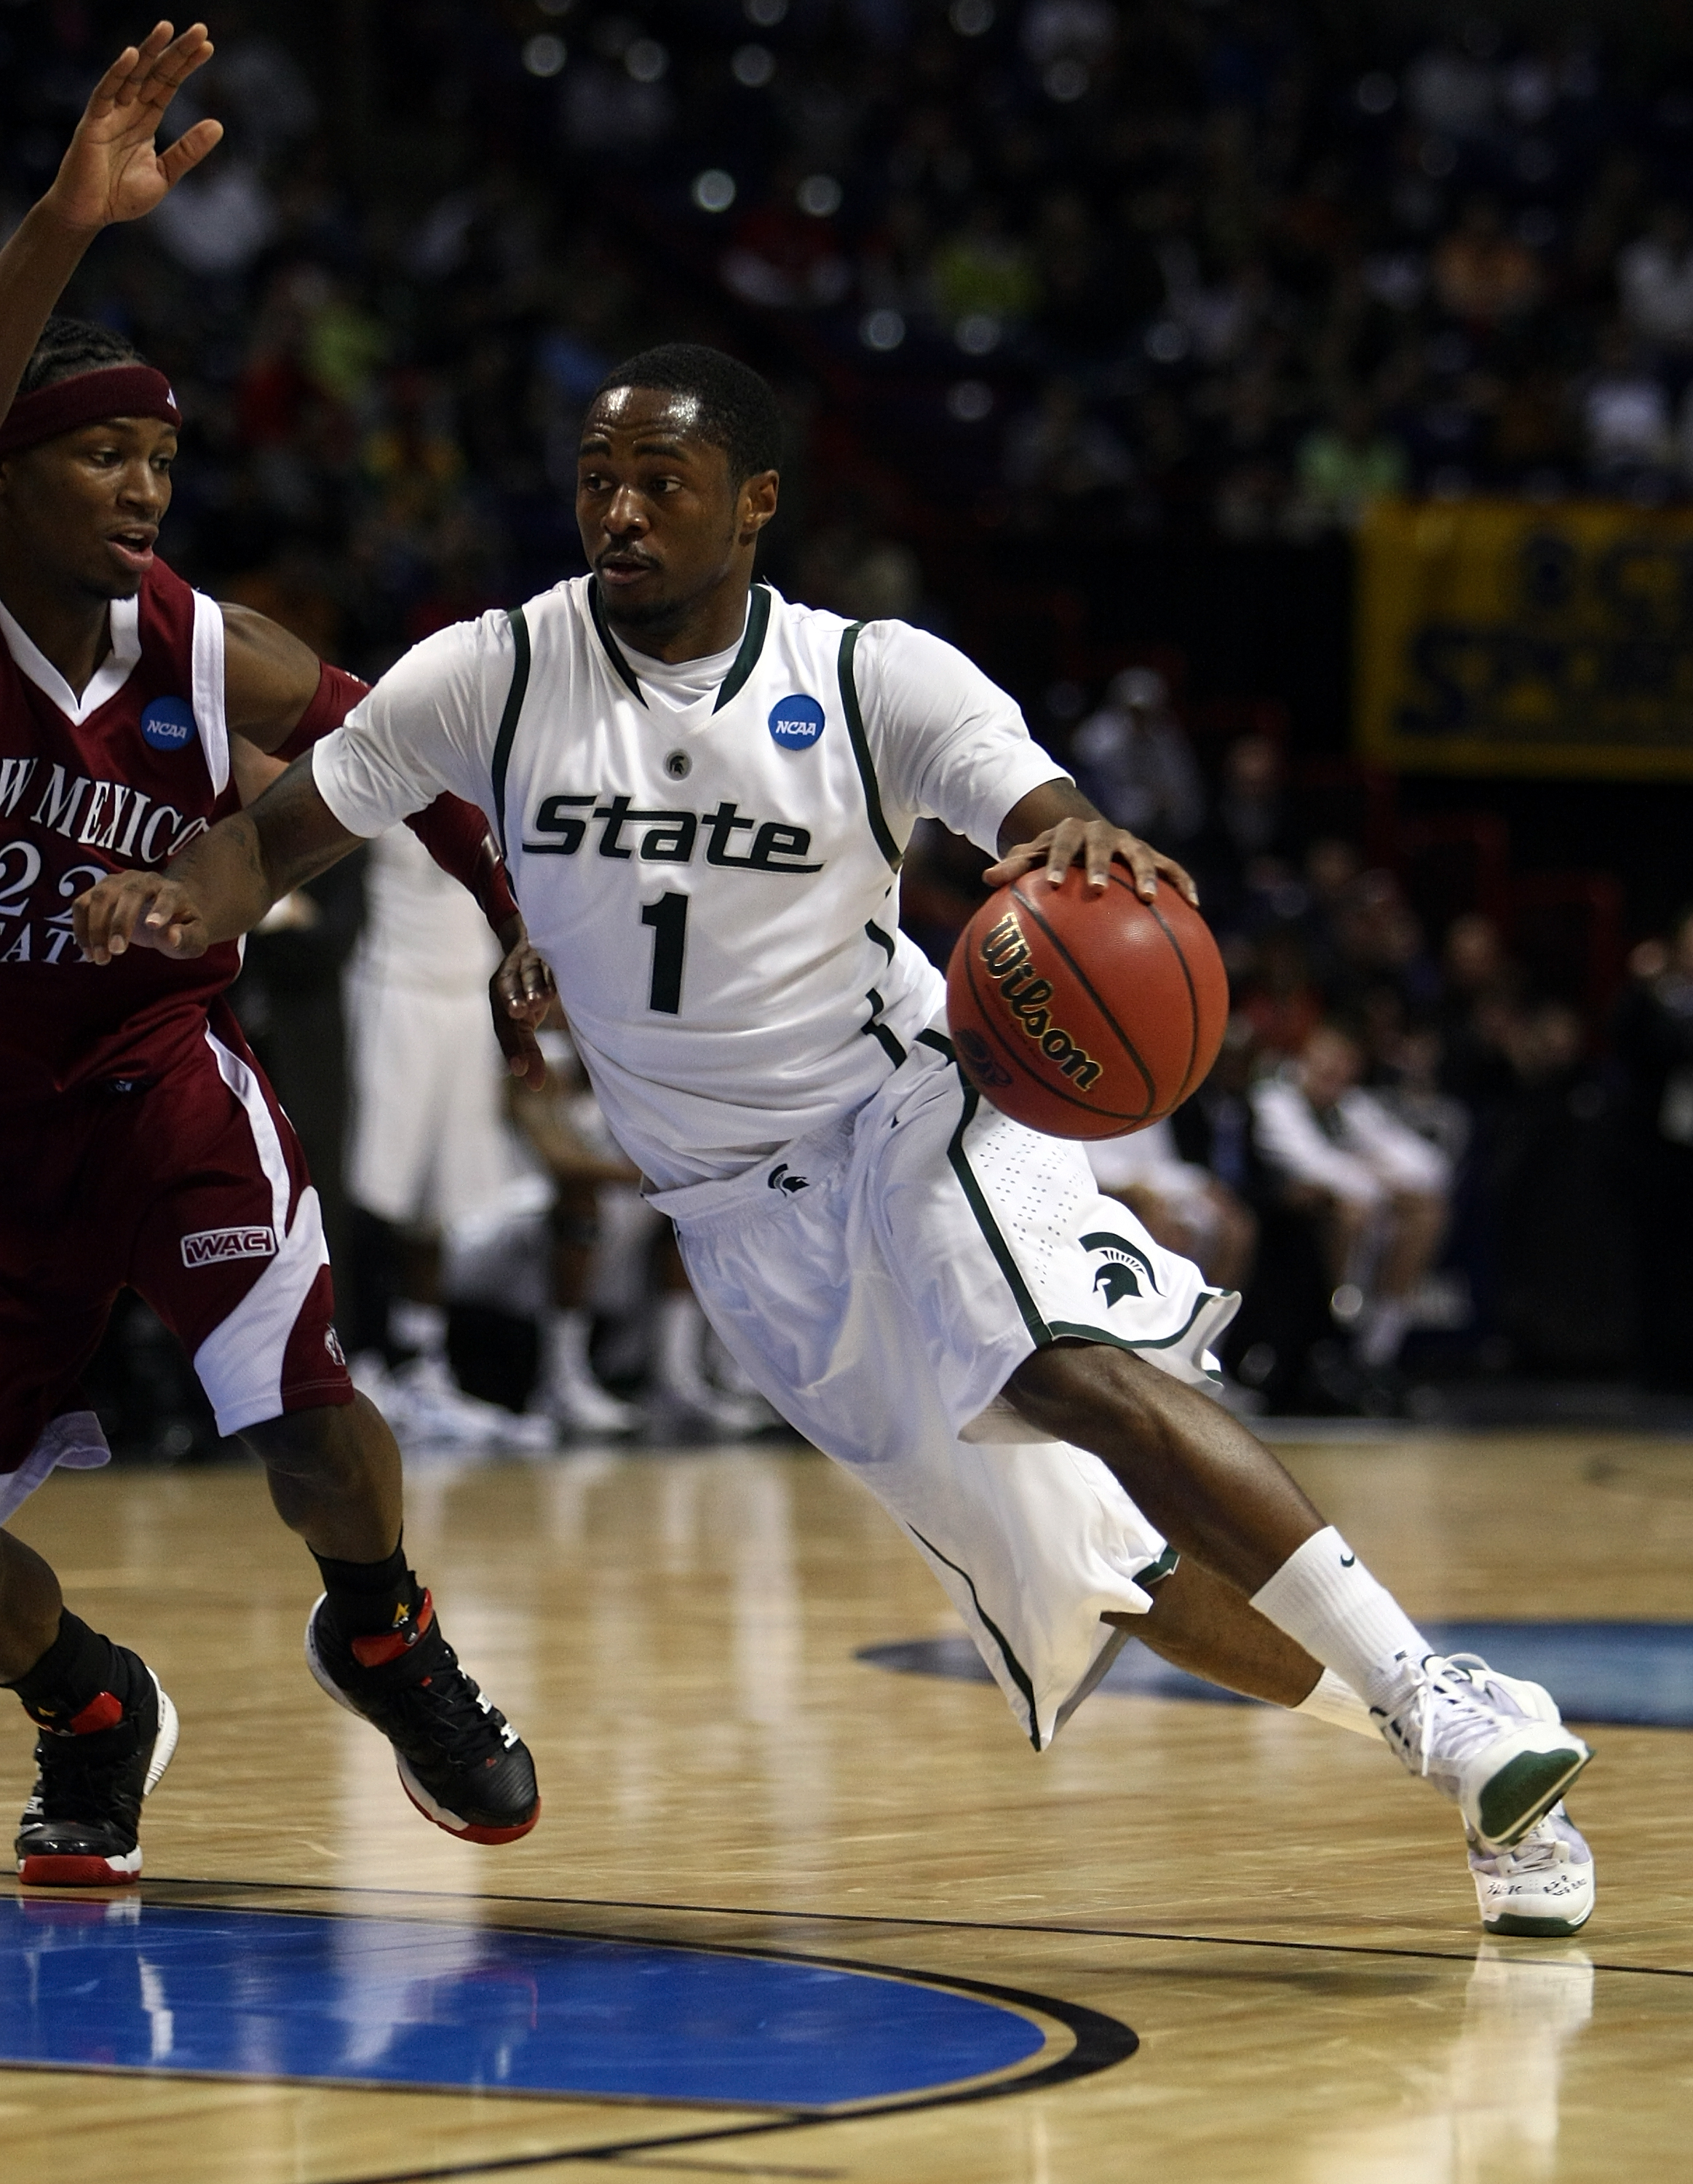 SPOKANE, WA - MARCH 19:  Kalin Lucas #1 of the Michigan St. Spartans drives to the basket against the New Mexico St. Aggies during the first round of the 2010 NCAA men's basketball tournament at Spokane Arena on March 19, 2010 in Spokane, Washington.  (Ph